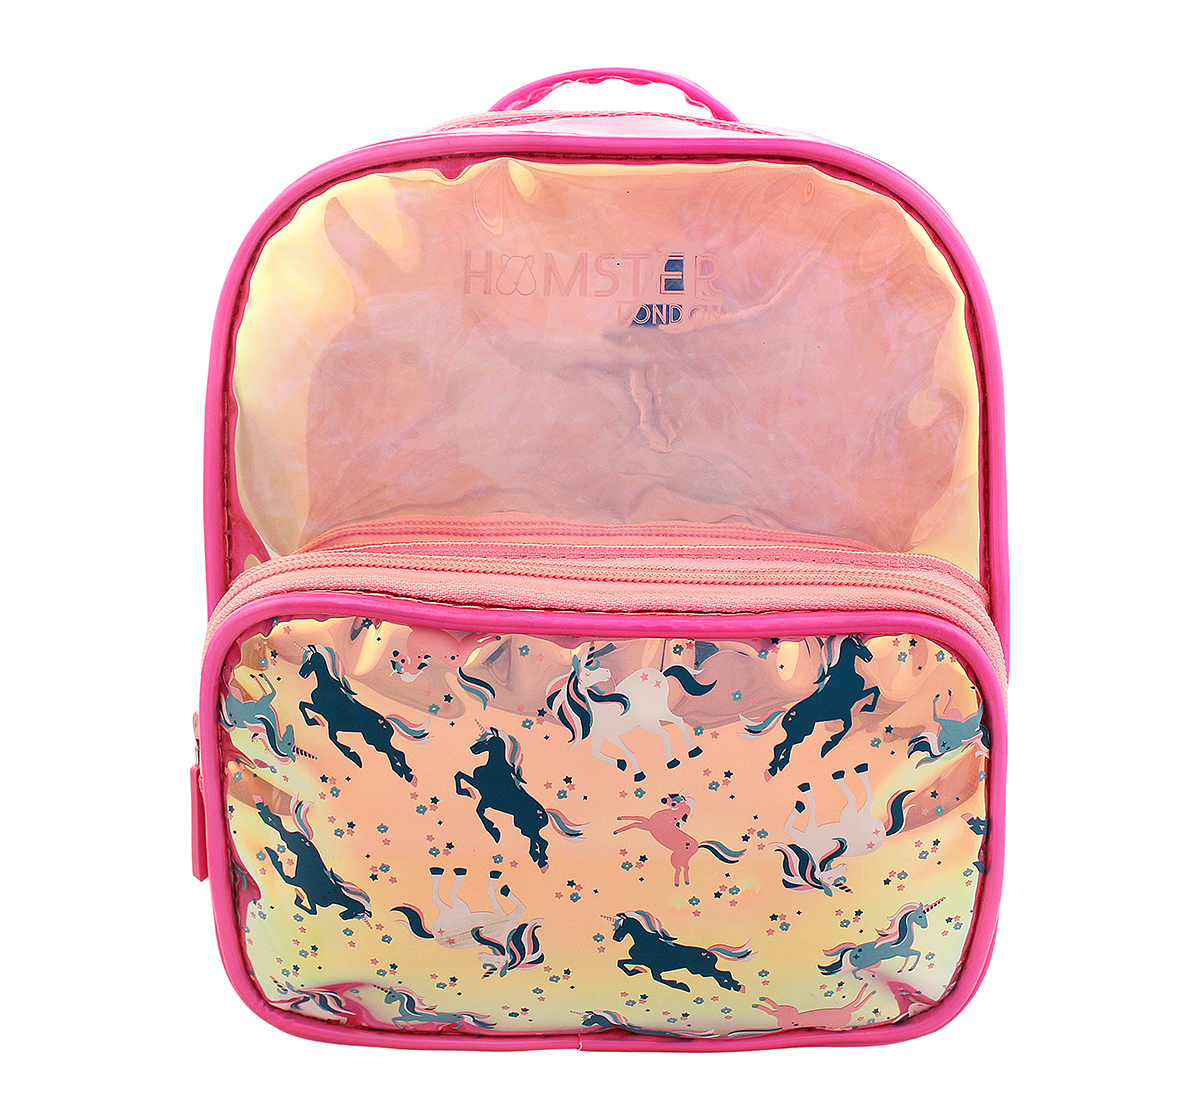 Hamster London | Hamster London Small Unicorn Backpack for Girls age 3Y+ (Pink)